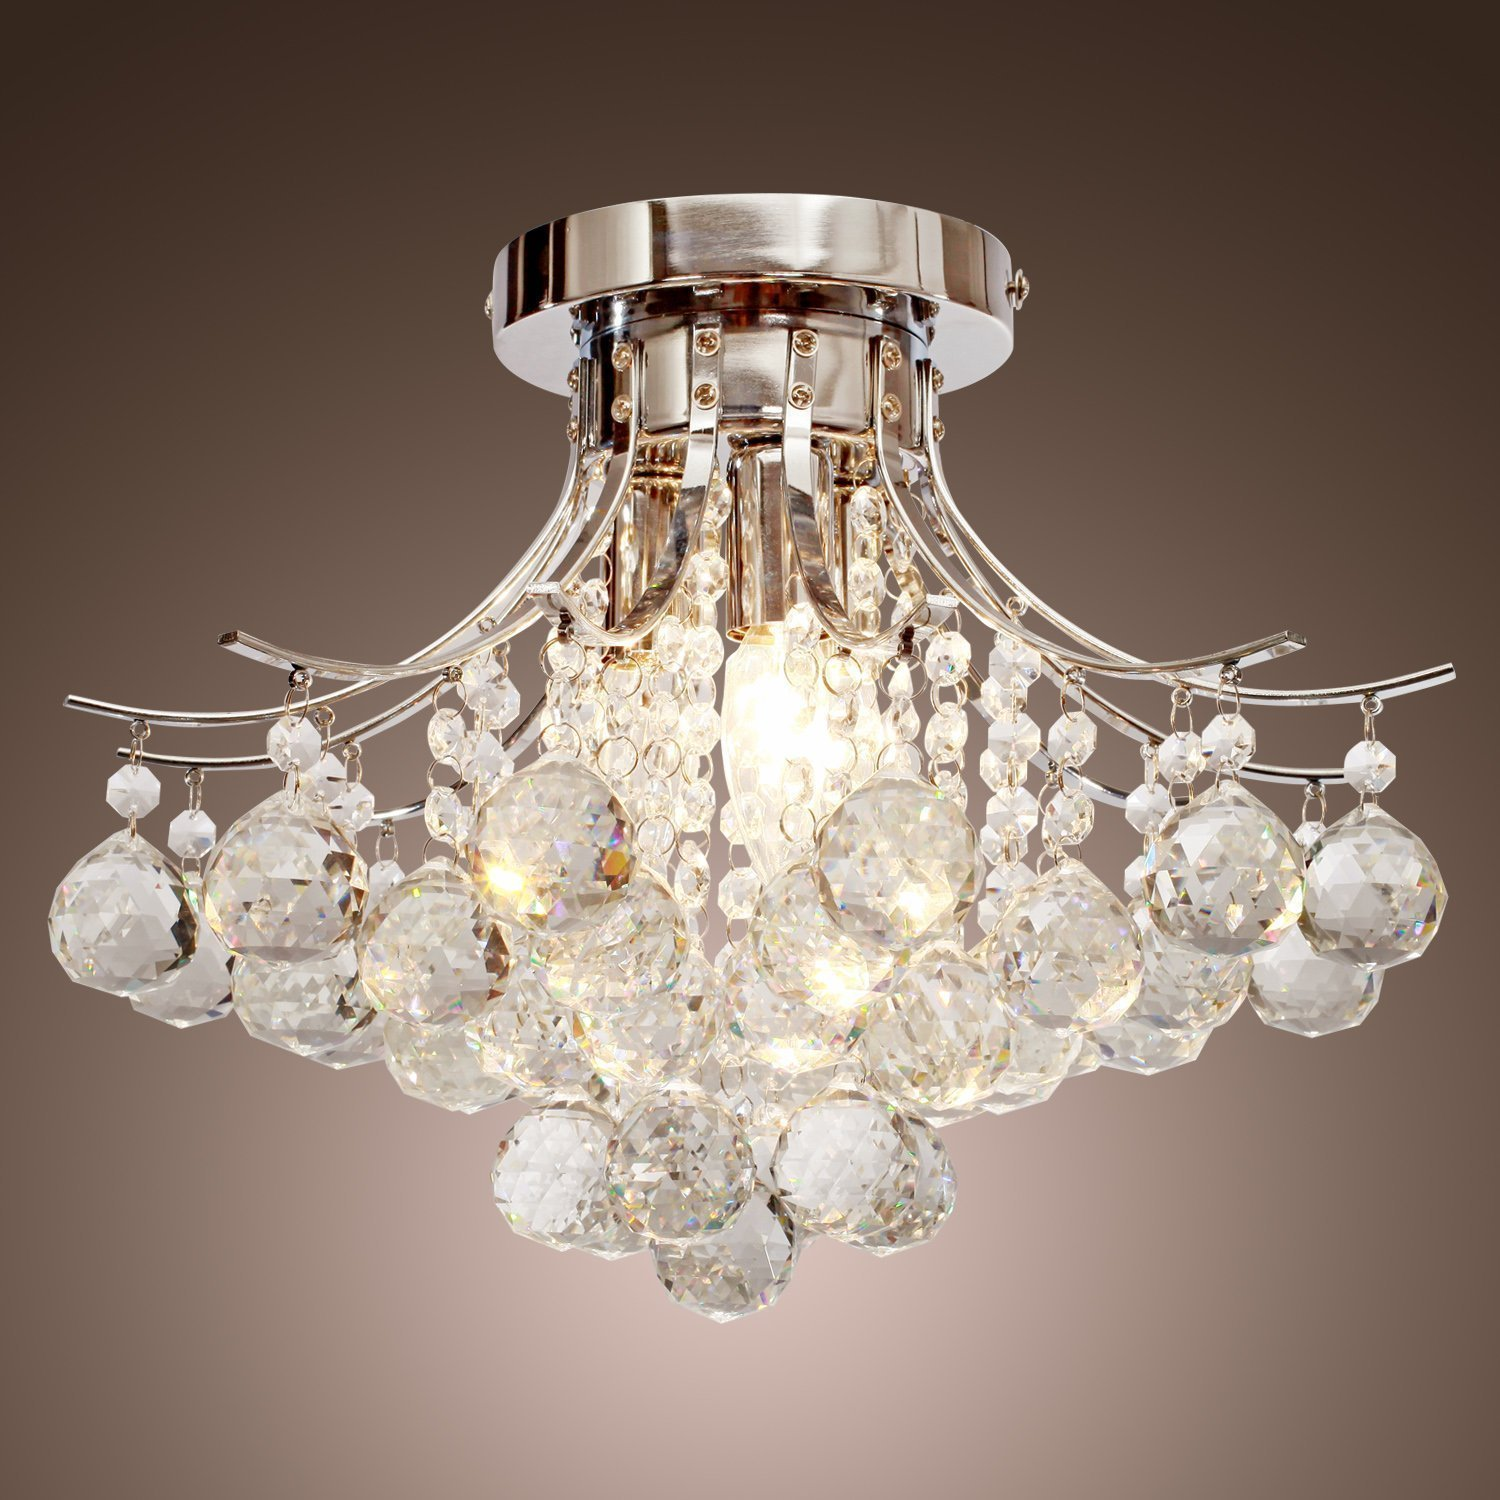 Loco chrome finish crystal chandelier with 3 lights mini style loco chrome finish crystal chandelier with 3 lights mini style flush mount ceiling light fixture for study roomoffice dining room bedroom arubaitofo Images